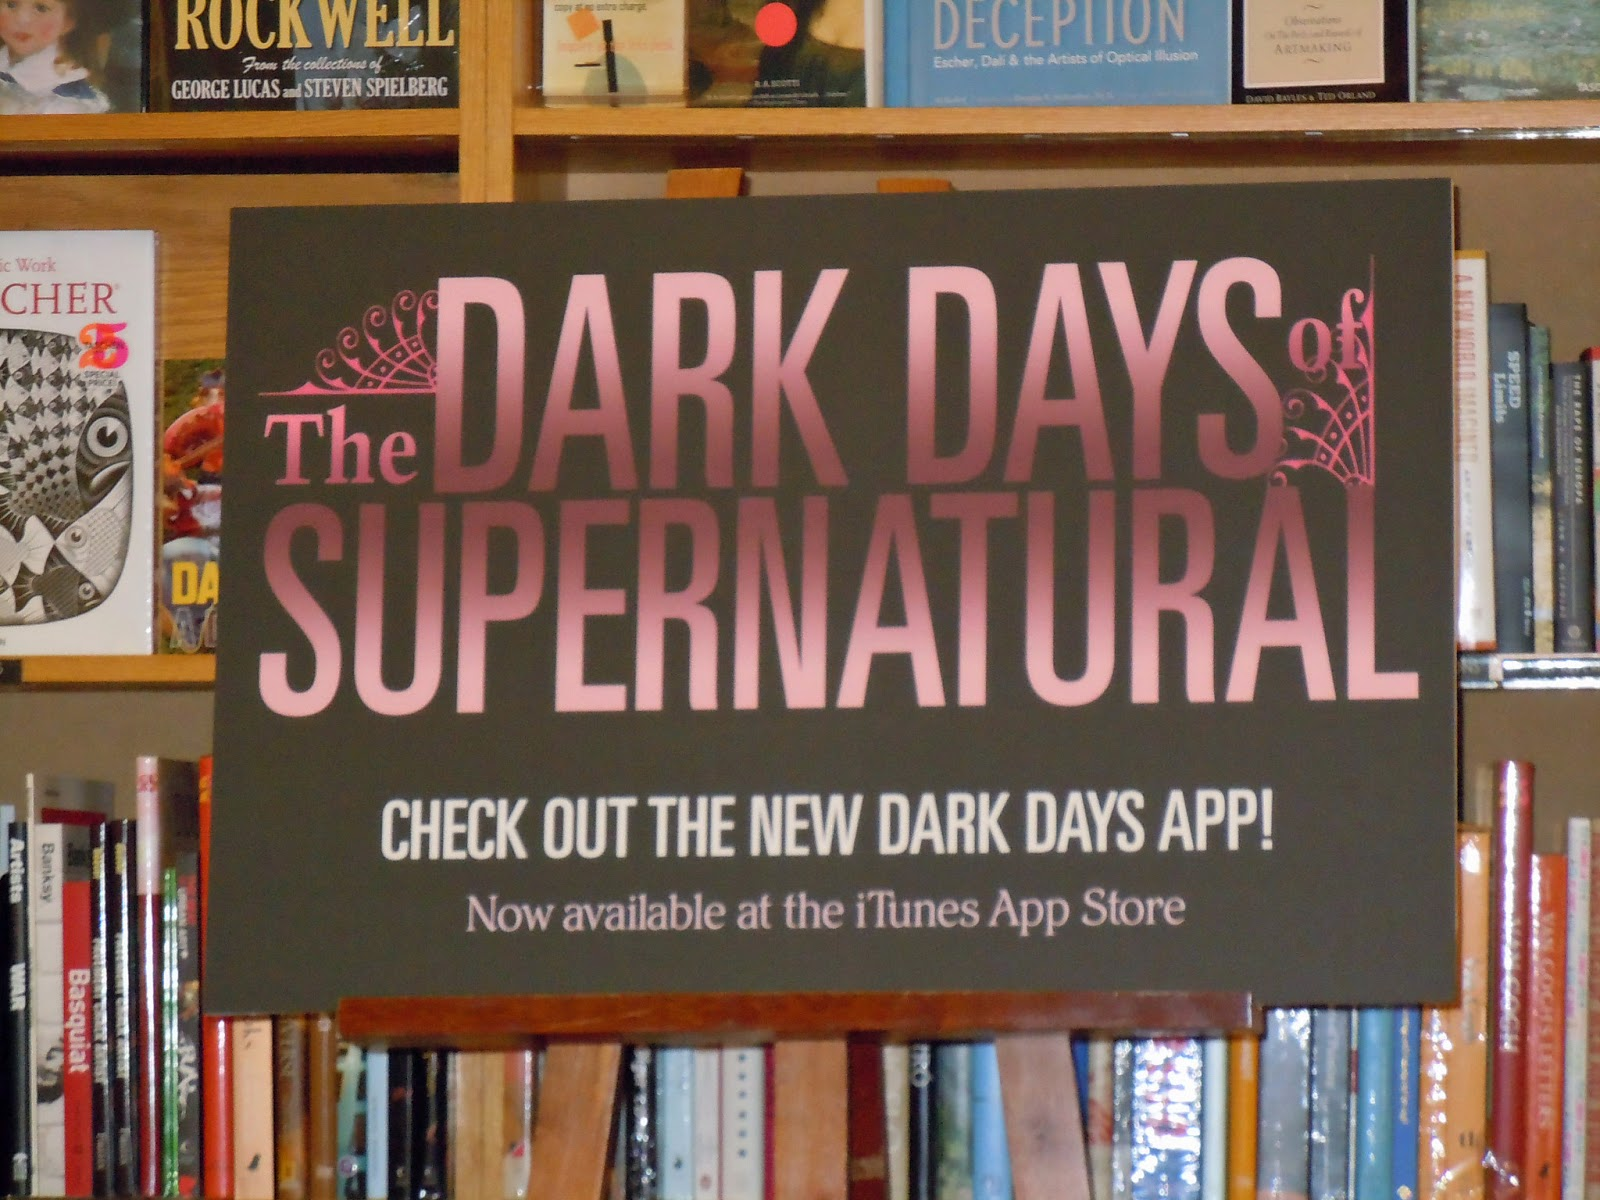 Dark Days of Supernatural Signing: Lansing